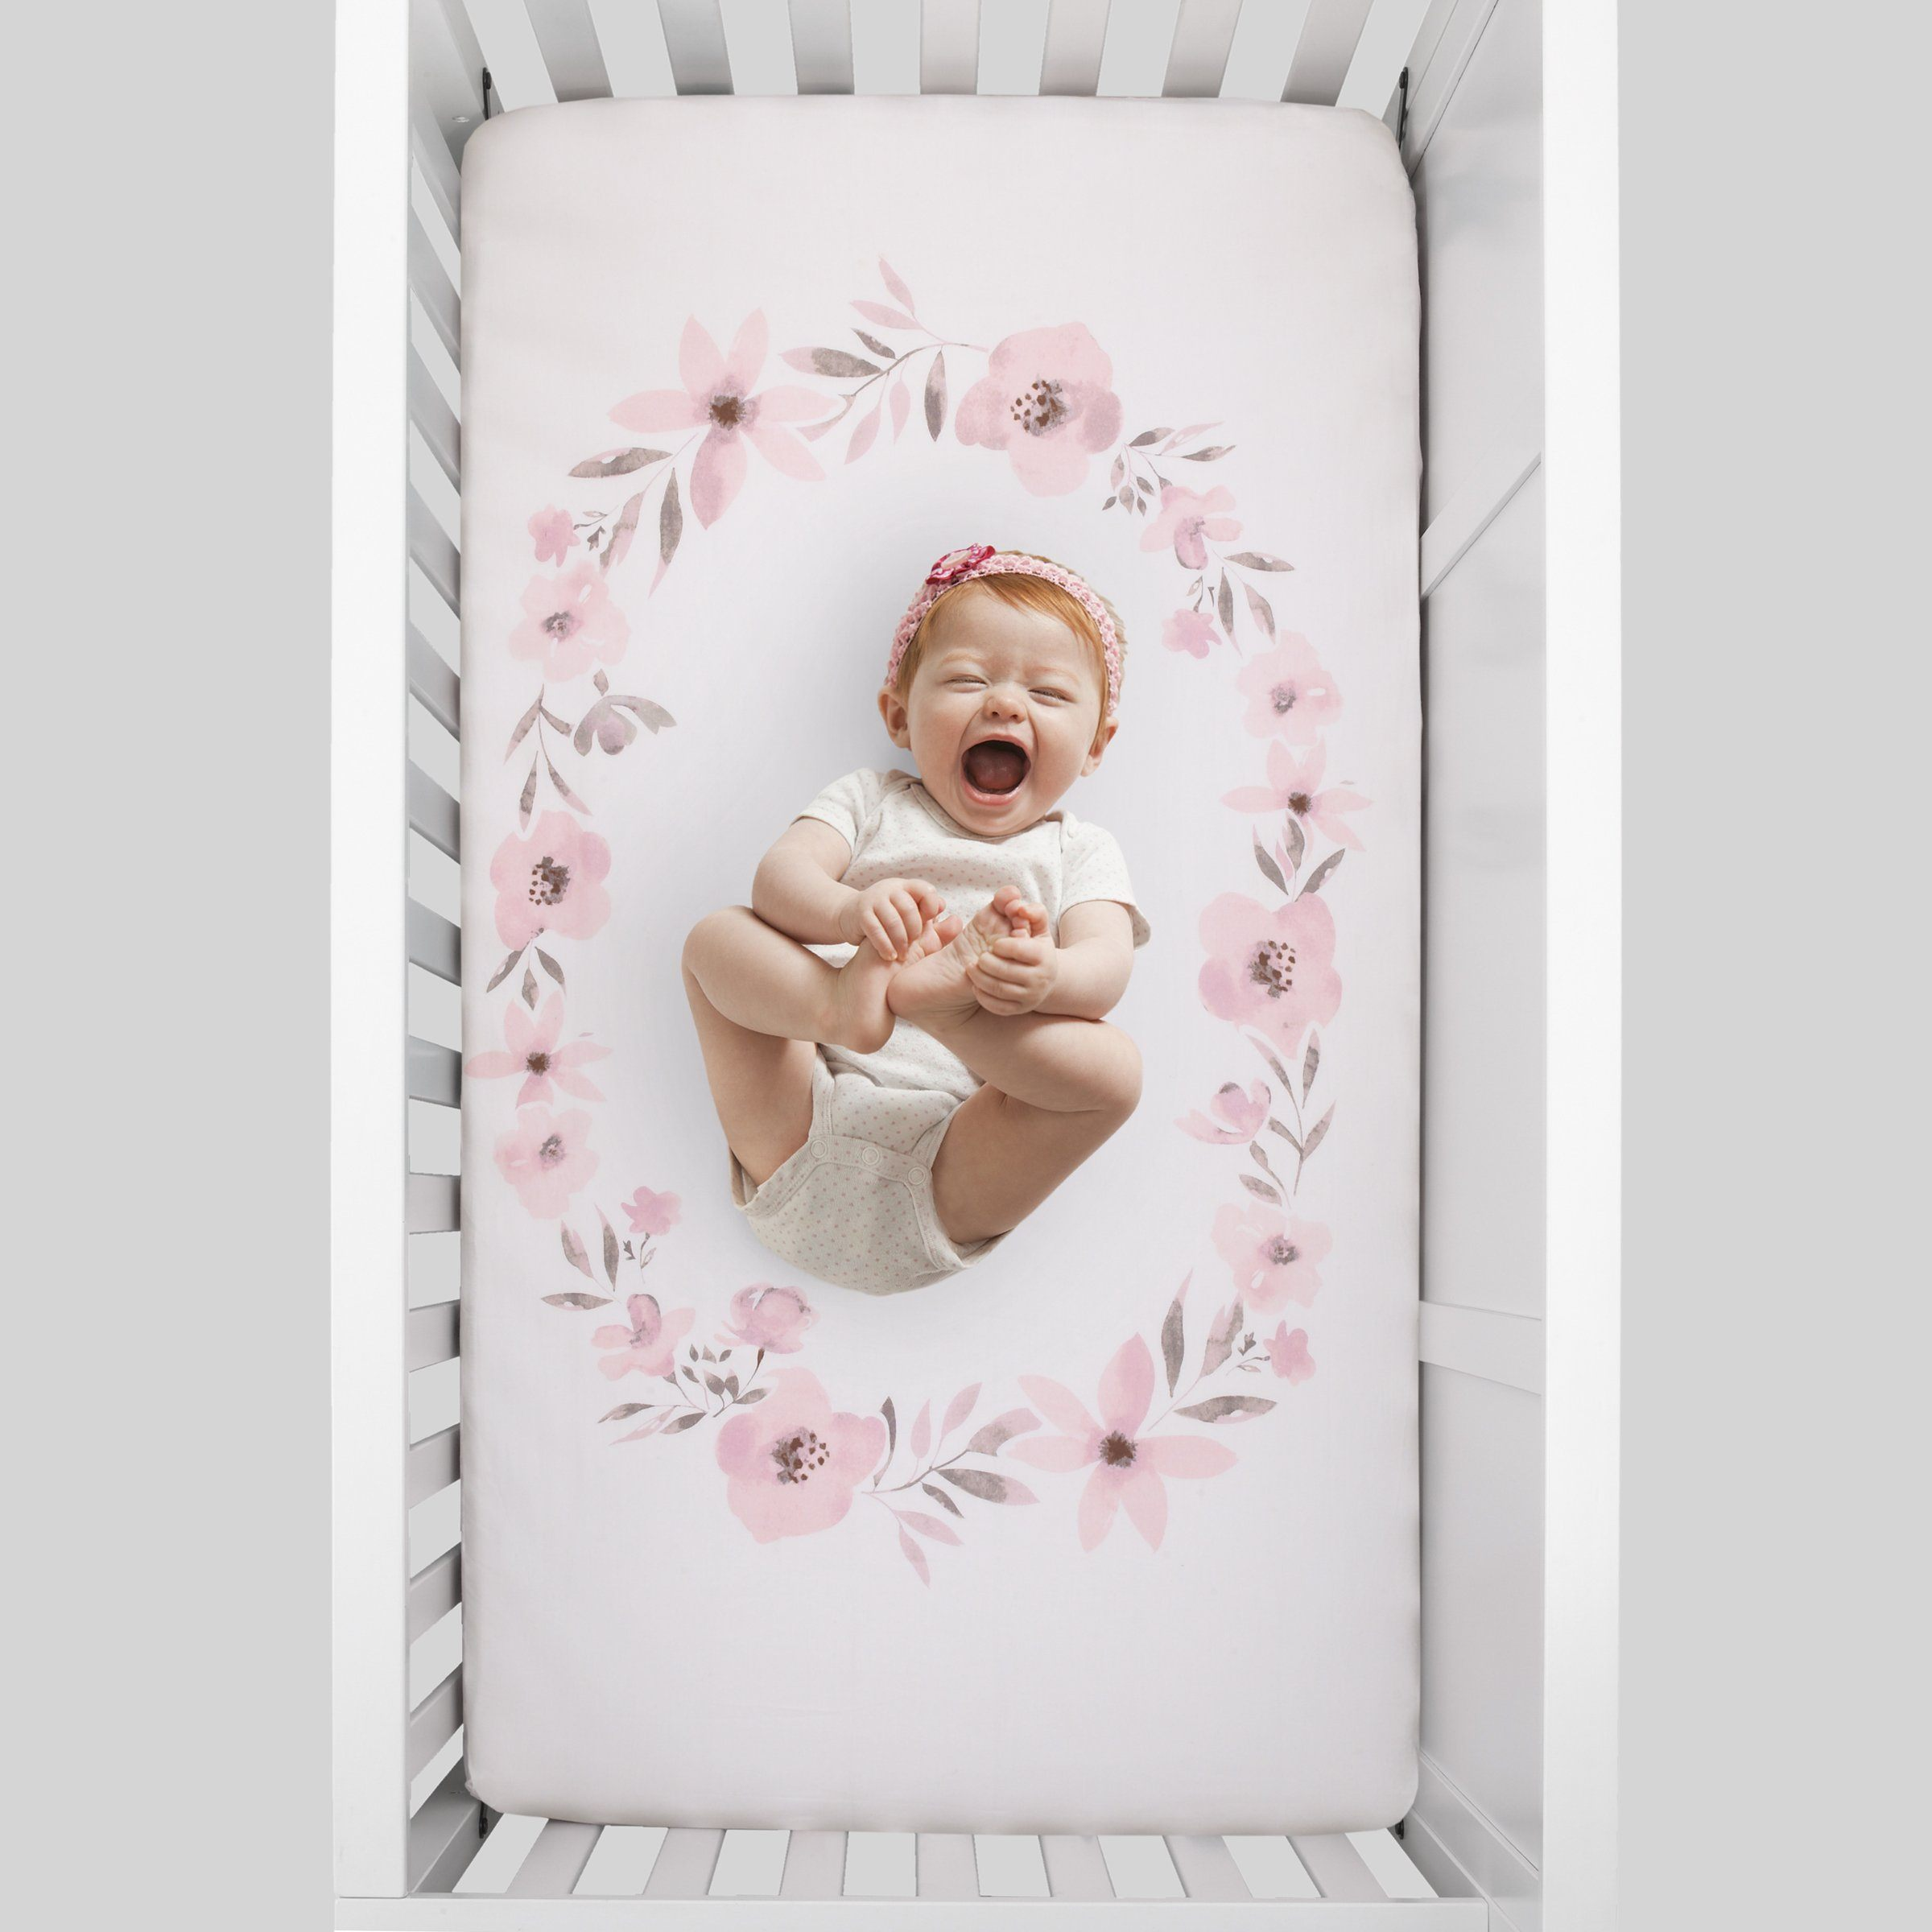 Countryside Floral Photo Op Crib Sheet - Project Nursery